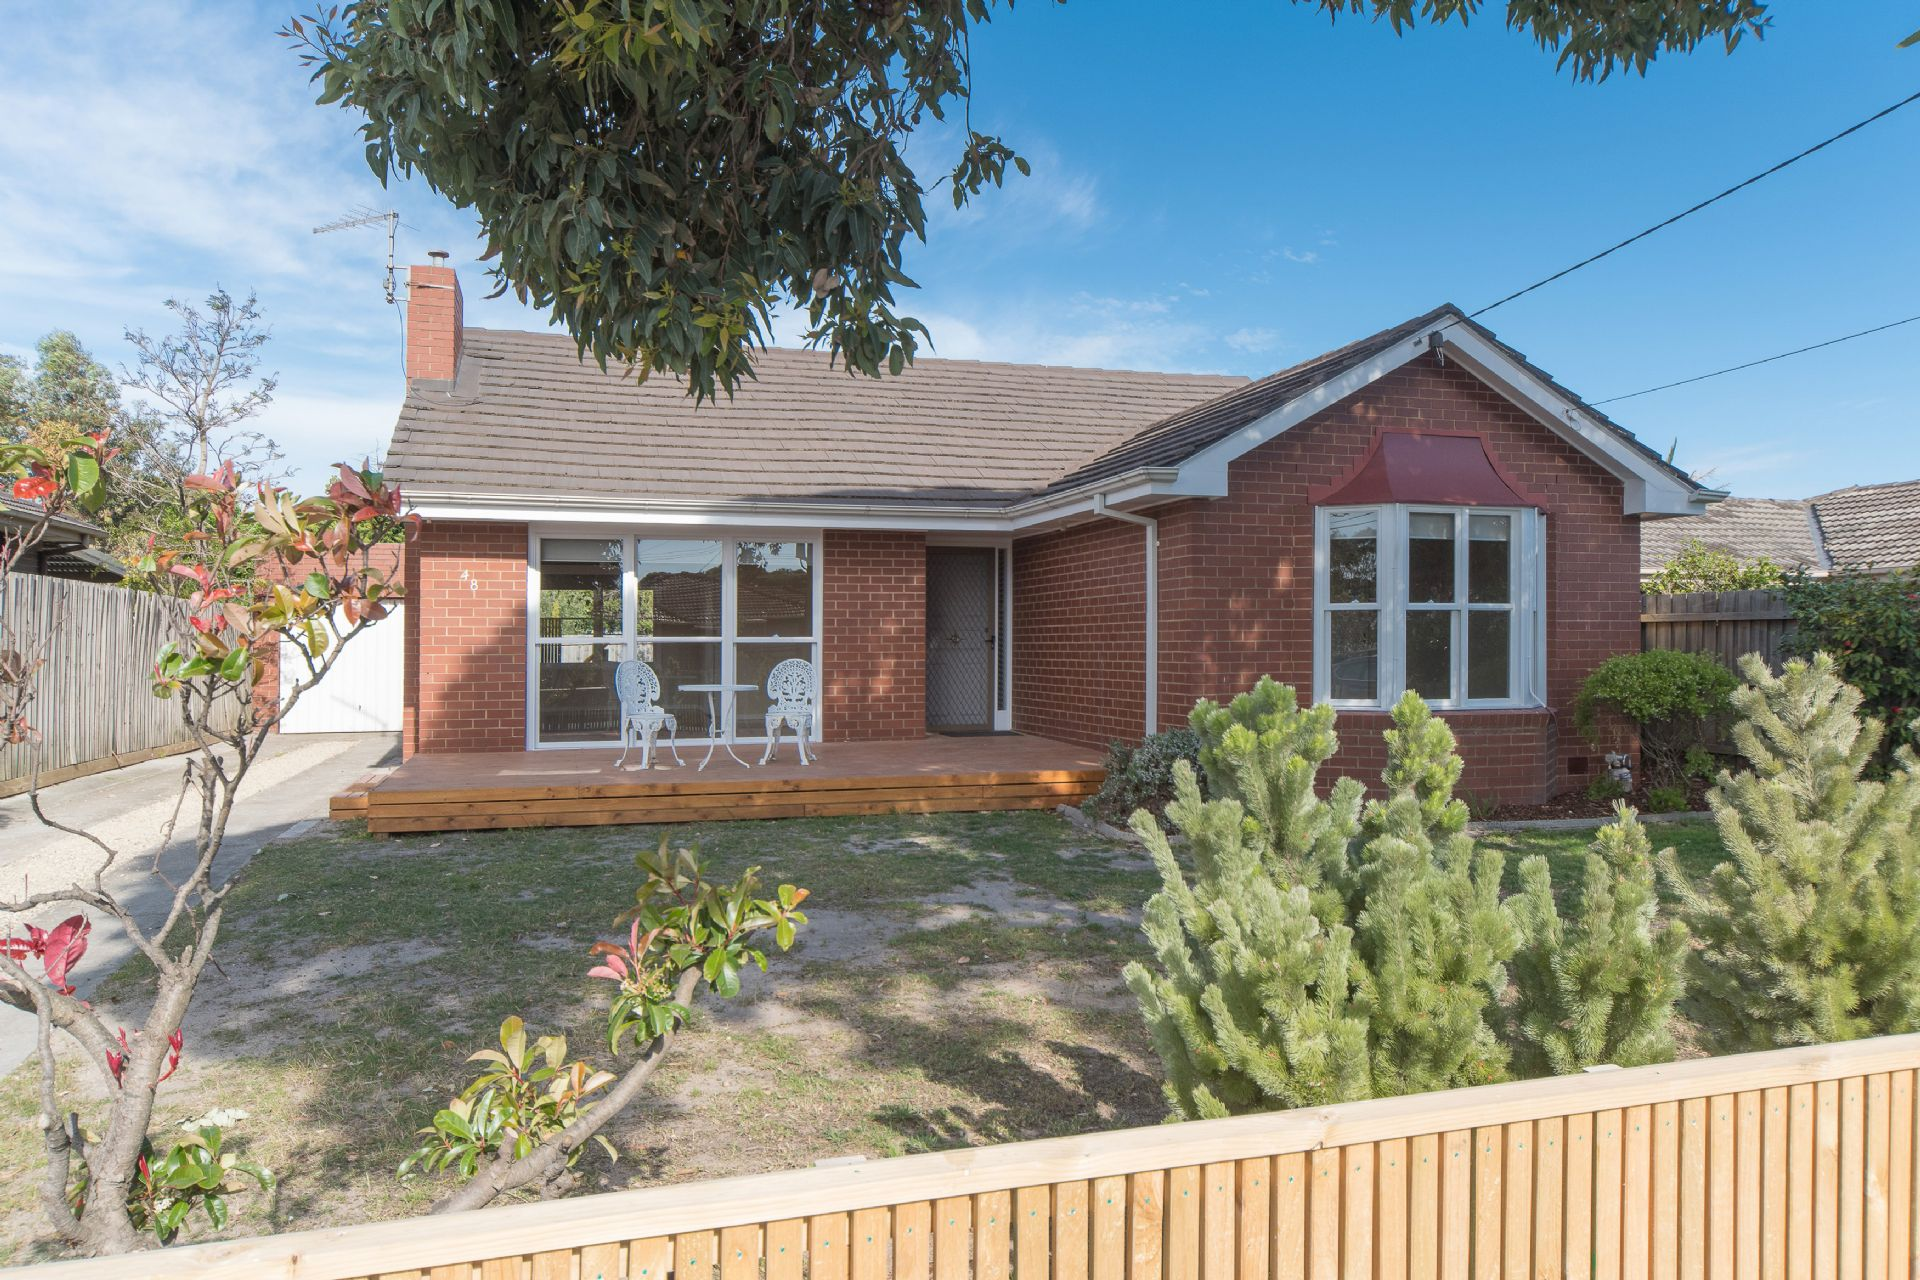 48 Claude Street, SEAFORD, VIC, 3198 - Image